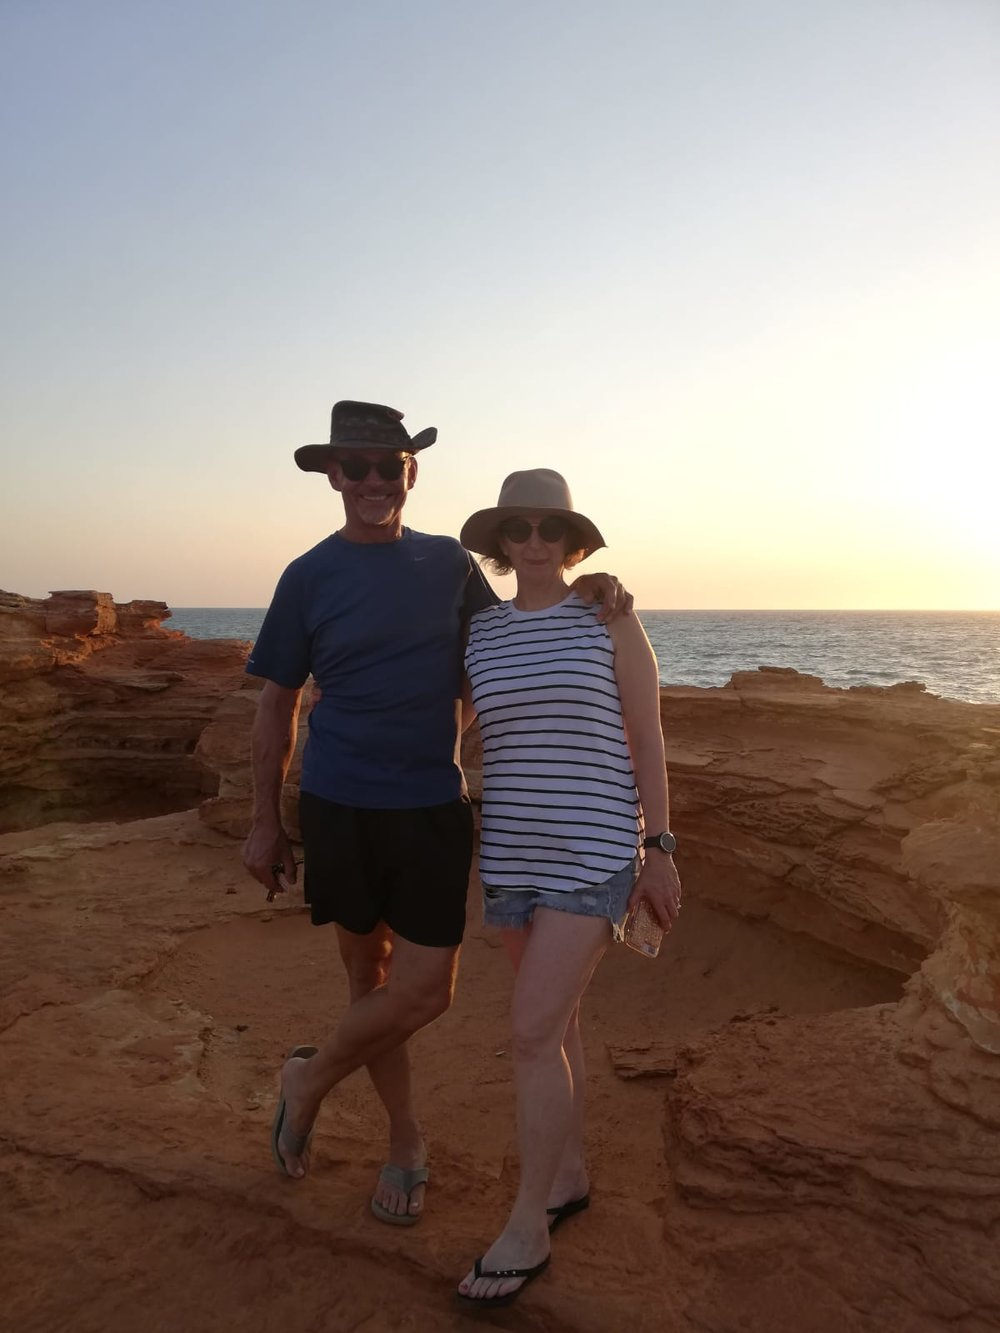 Our Story - Rod and Candy are Western Australian's who have fallen in love with Broome and made it their home.We will take care of you and showcase the stunning Broome, a gateway to one of the last untouched regions on our planet, the Kimberley region of far north Western Australia.Our fleet of modern, purpose-built buses can provide Wedding, event or group function transfers, and specialised or personal tours:Welcome to Broome Town Tour, Malcolm Douglas Crocodile Park, 12 Mile Bird Park Tours, The Mango Place & Famous Cable Beach Tour & Staircase to the Moon Tour.No matter the occasion, We are able to customise your event or travel itinerary to make sure you get to enjoy the hidden treasures, history and beauty of Broome.